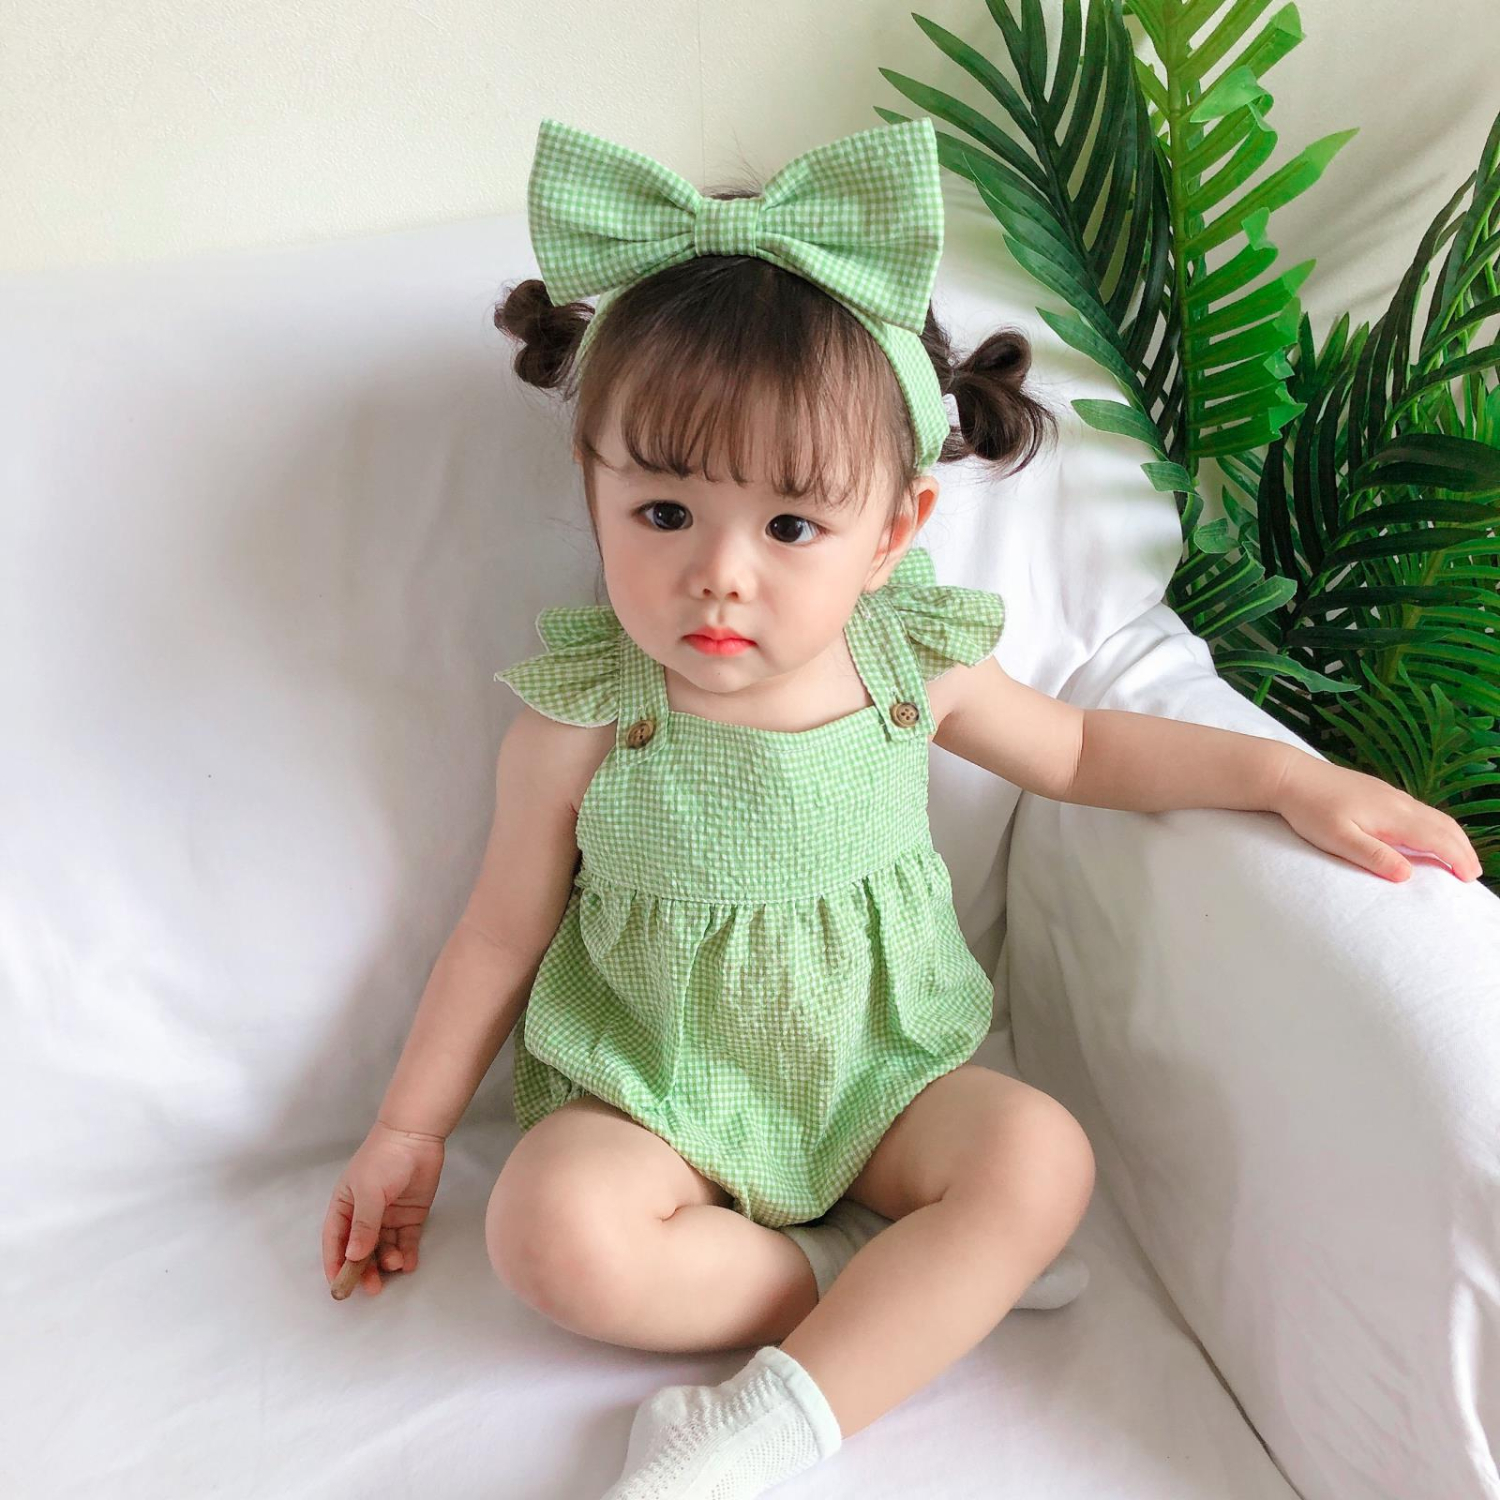 2pcs/Set Summer Newborn Baby Clothes Plaid Cotton Ruffle Sleeveless Infant Romper New Toddler Outfits Sunsuit Girl With Headband